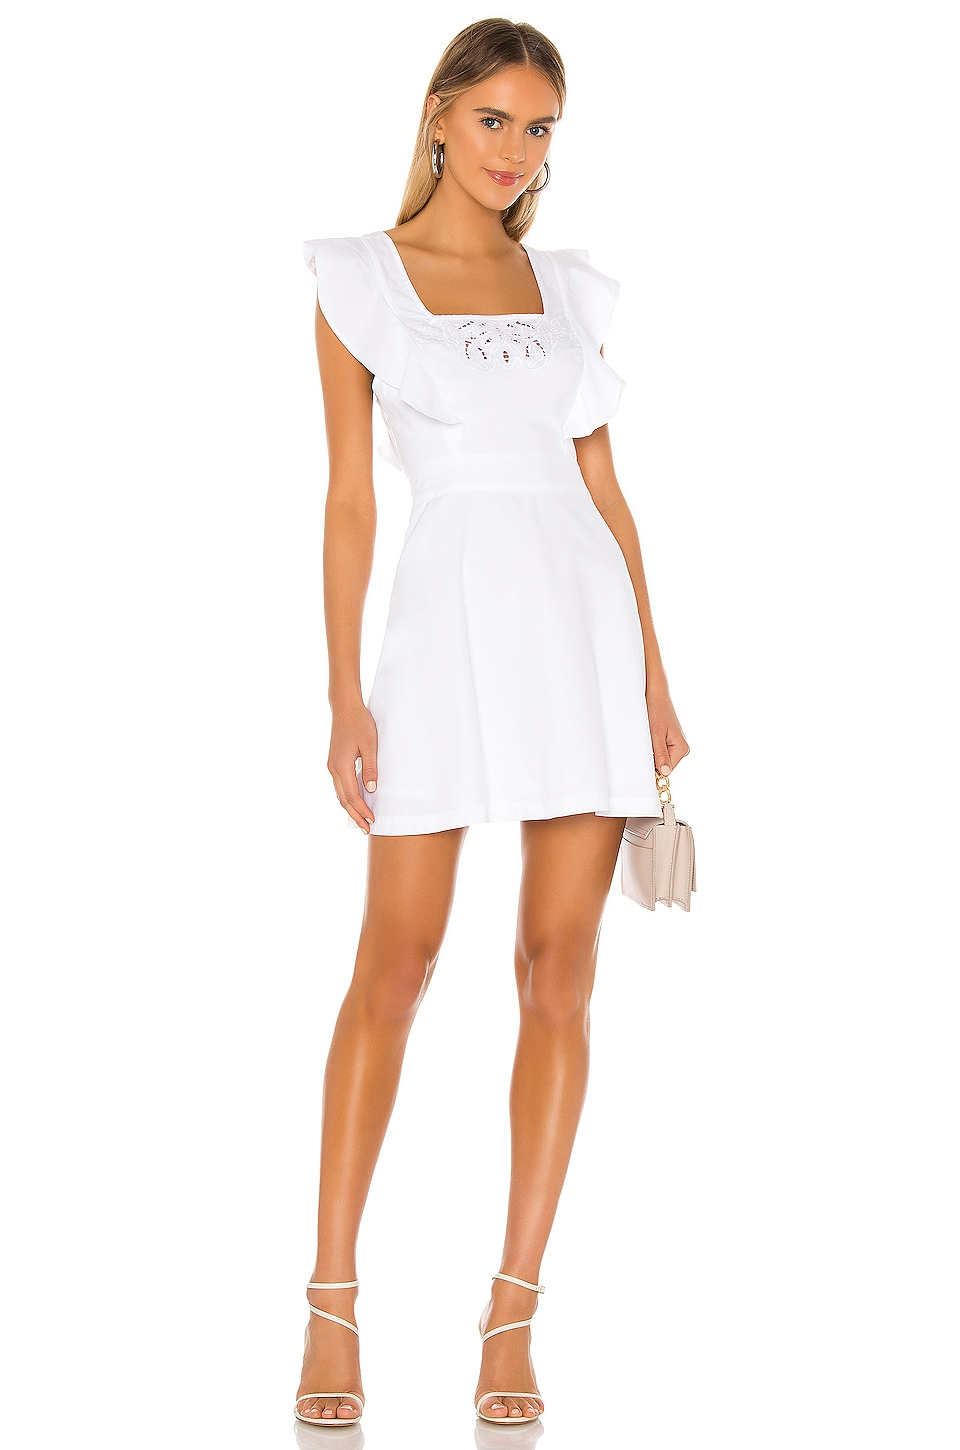 Tie Back Dress             BCBGeneration                                                                                                       CA$ 162.65 14